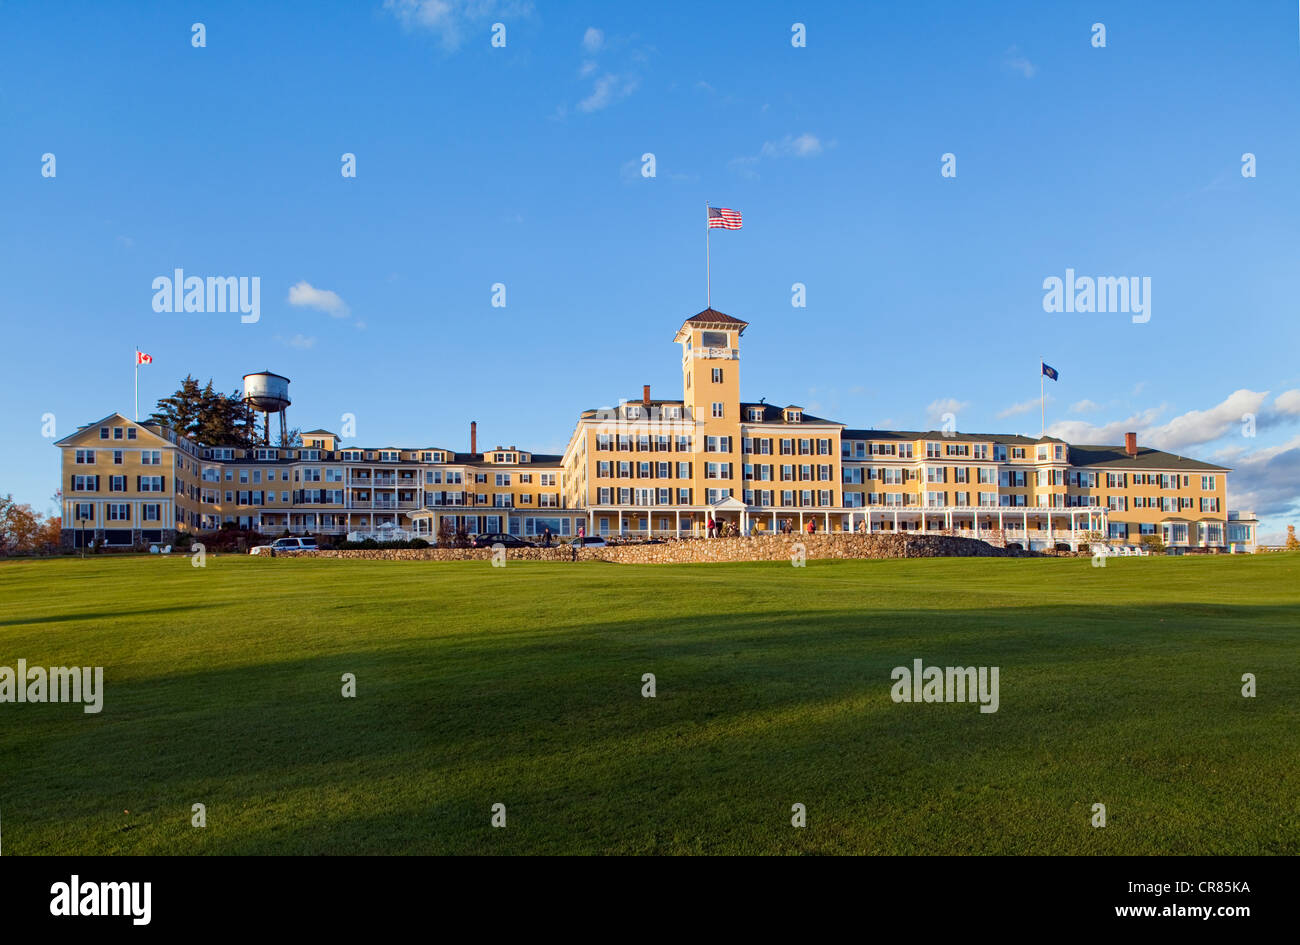 Stock photo united states new england new hampshire whitefield luxury hotel mountain view grand resort